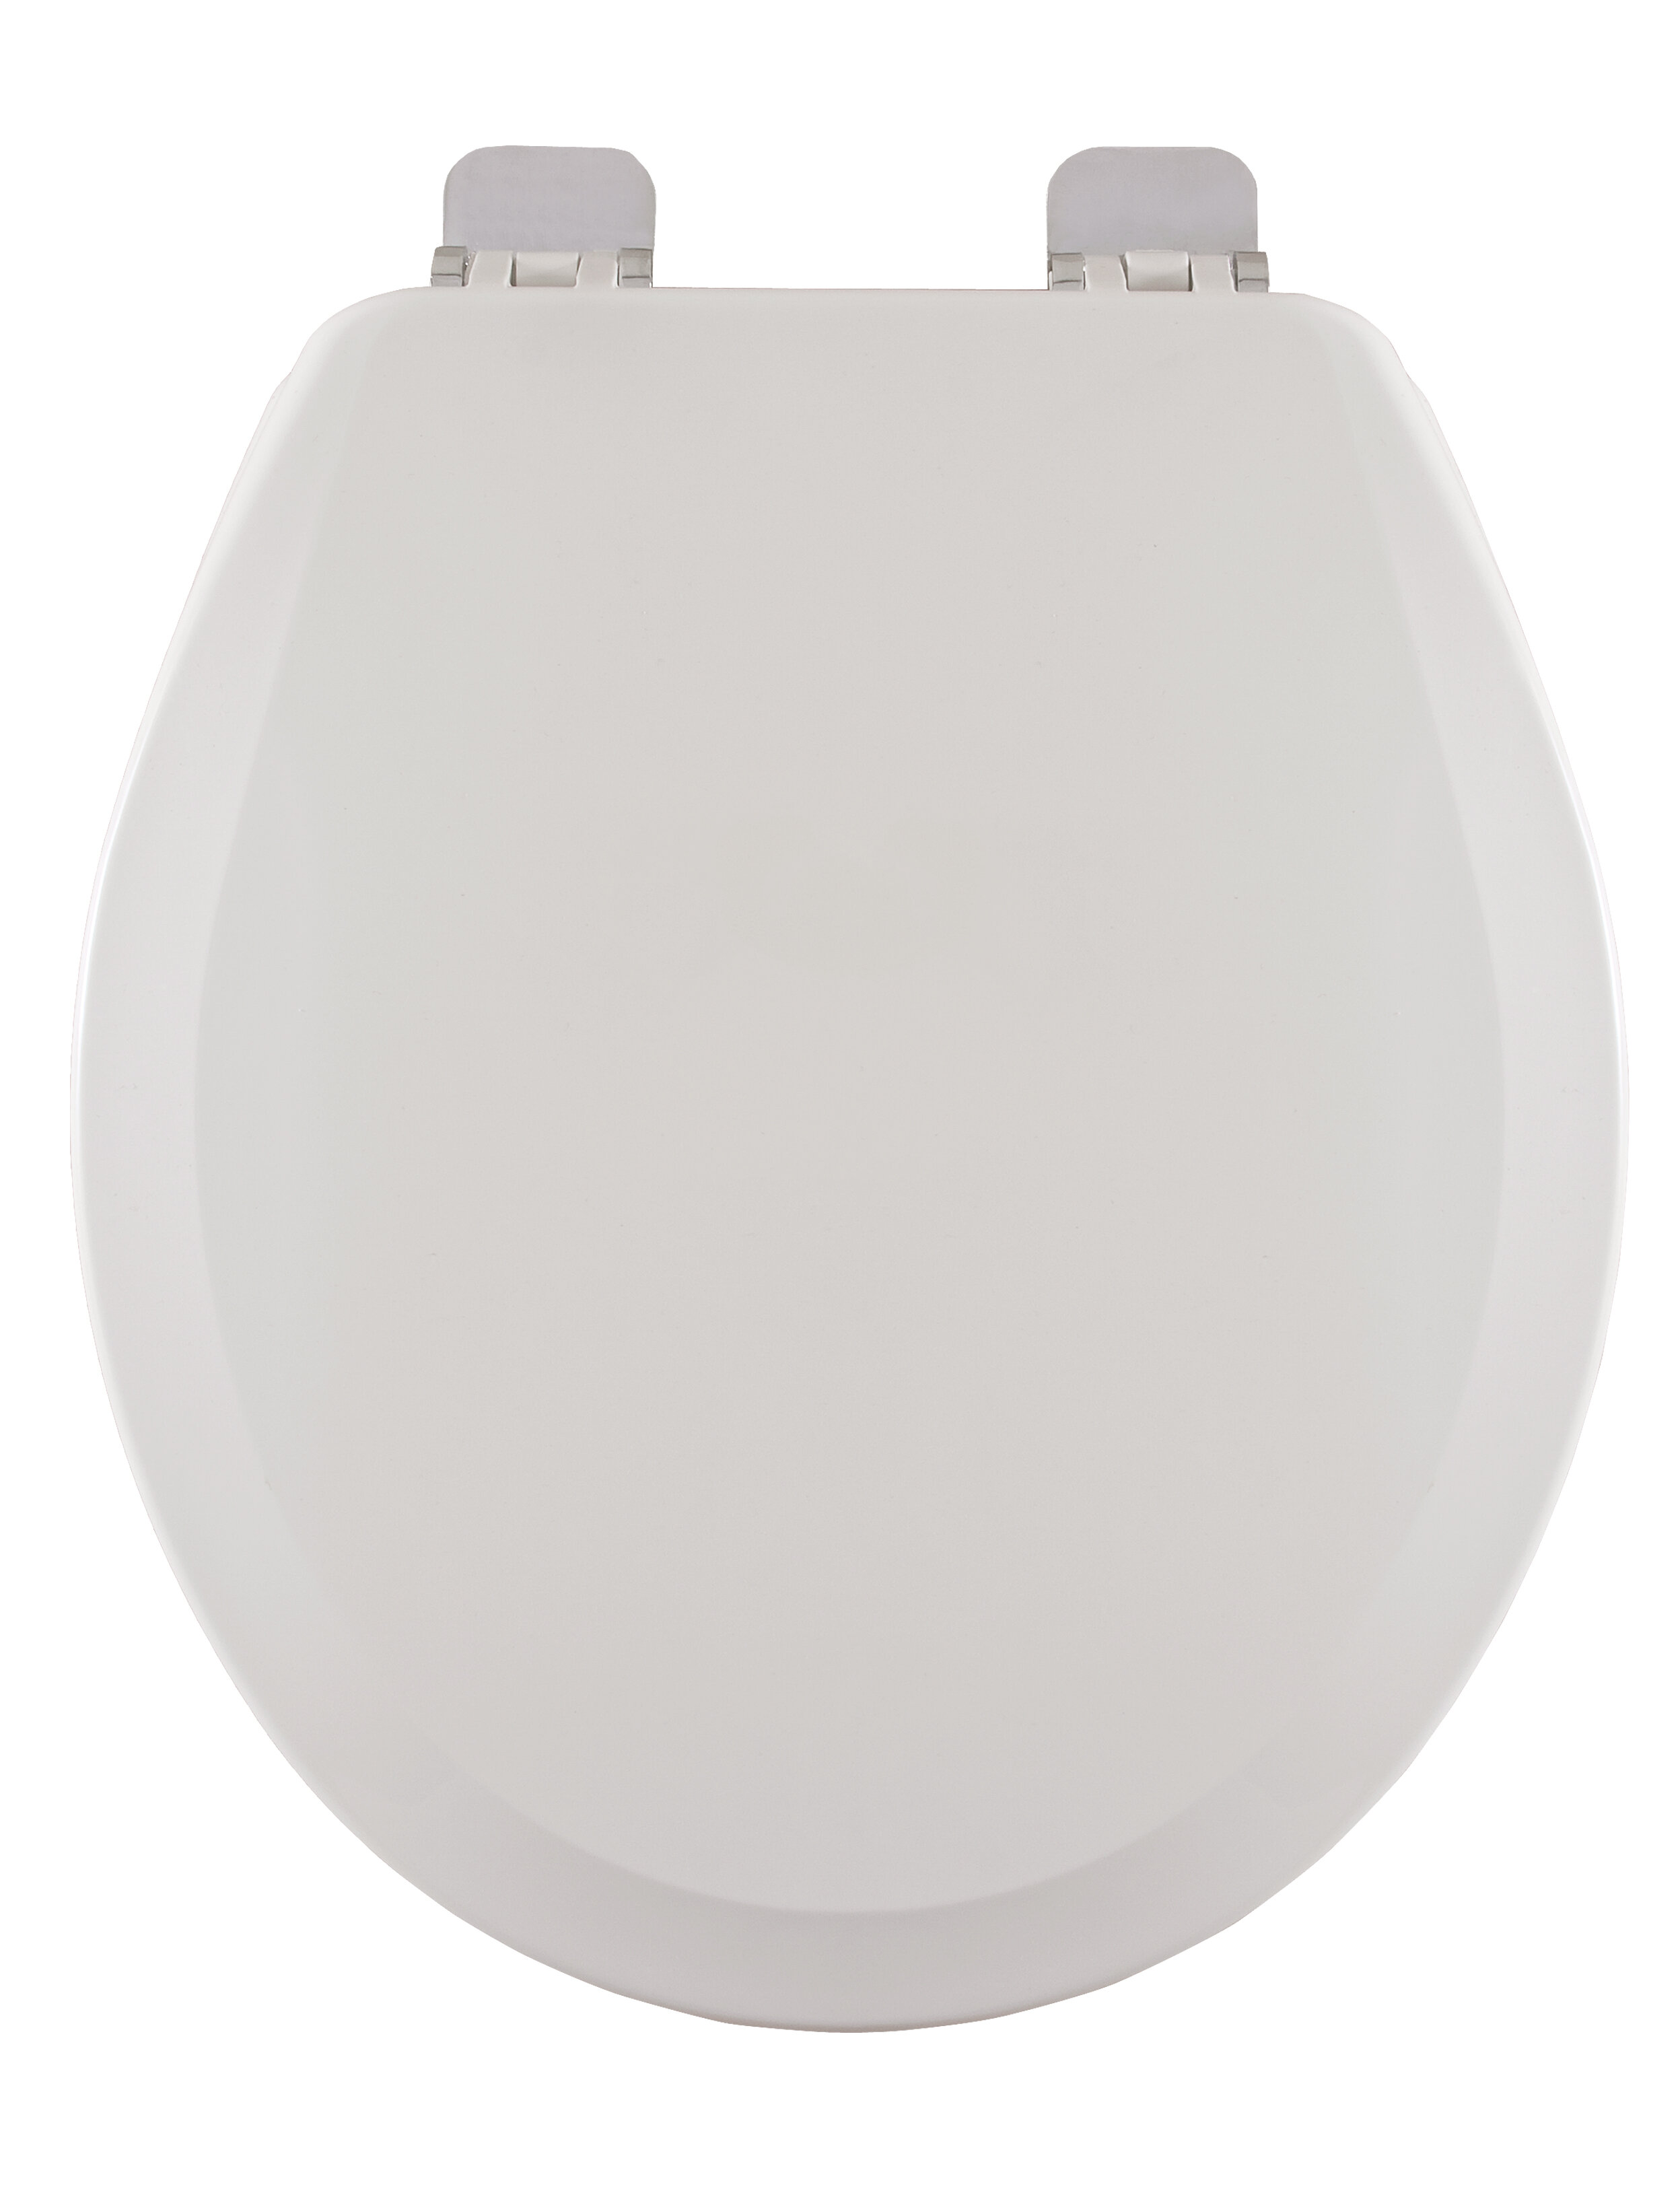 Centoco 700bn 001 Round Wooden Toilet Seat Heavy Duty Moulded Wood With Centocore Technology White With Brushed Nickel Hinge